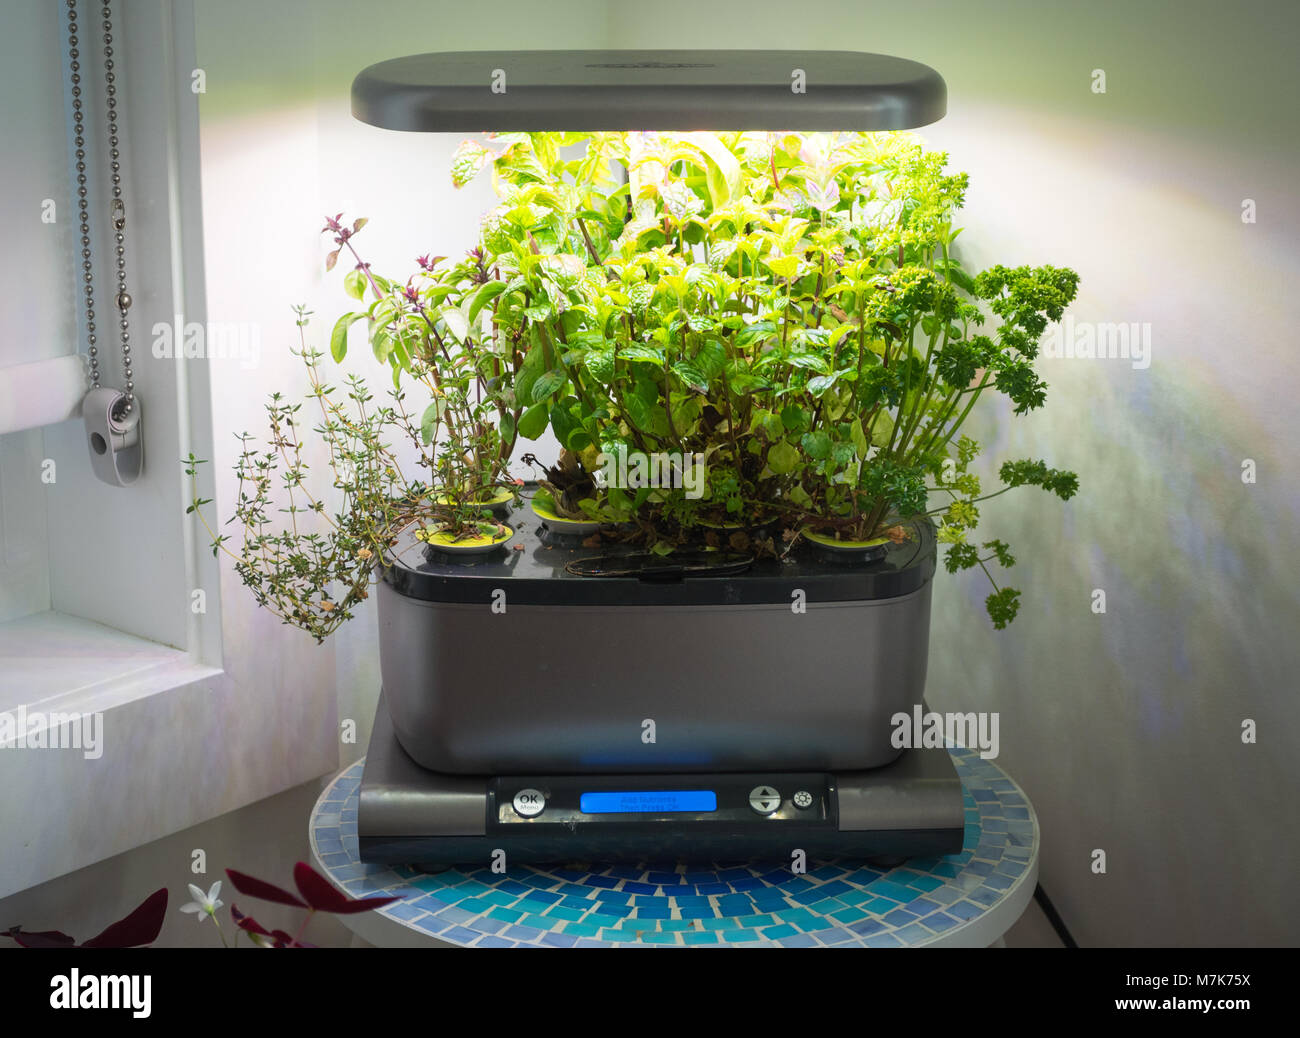 An miracle gro aerogarden a popular home indoor garden that uses an miracle gro aerogarden a popular home indoor garden that uses hydroponics to grow herbs and vegetables workwithnaturefo